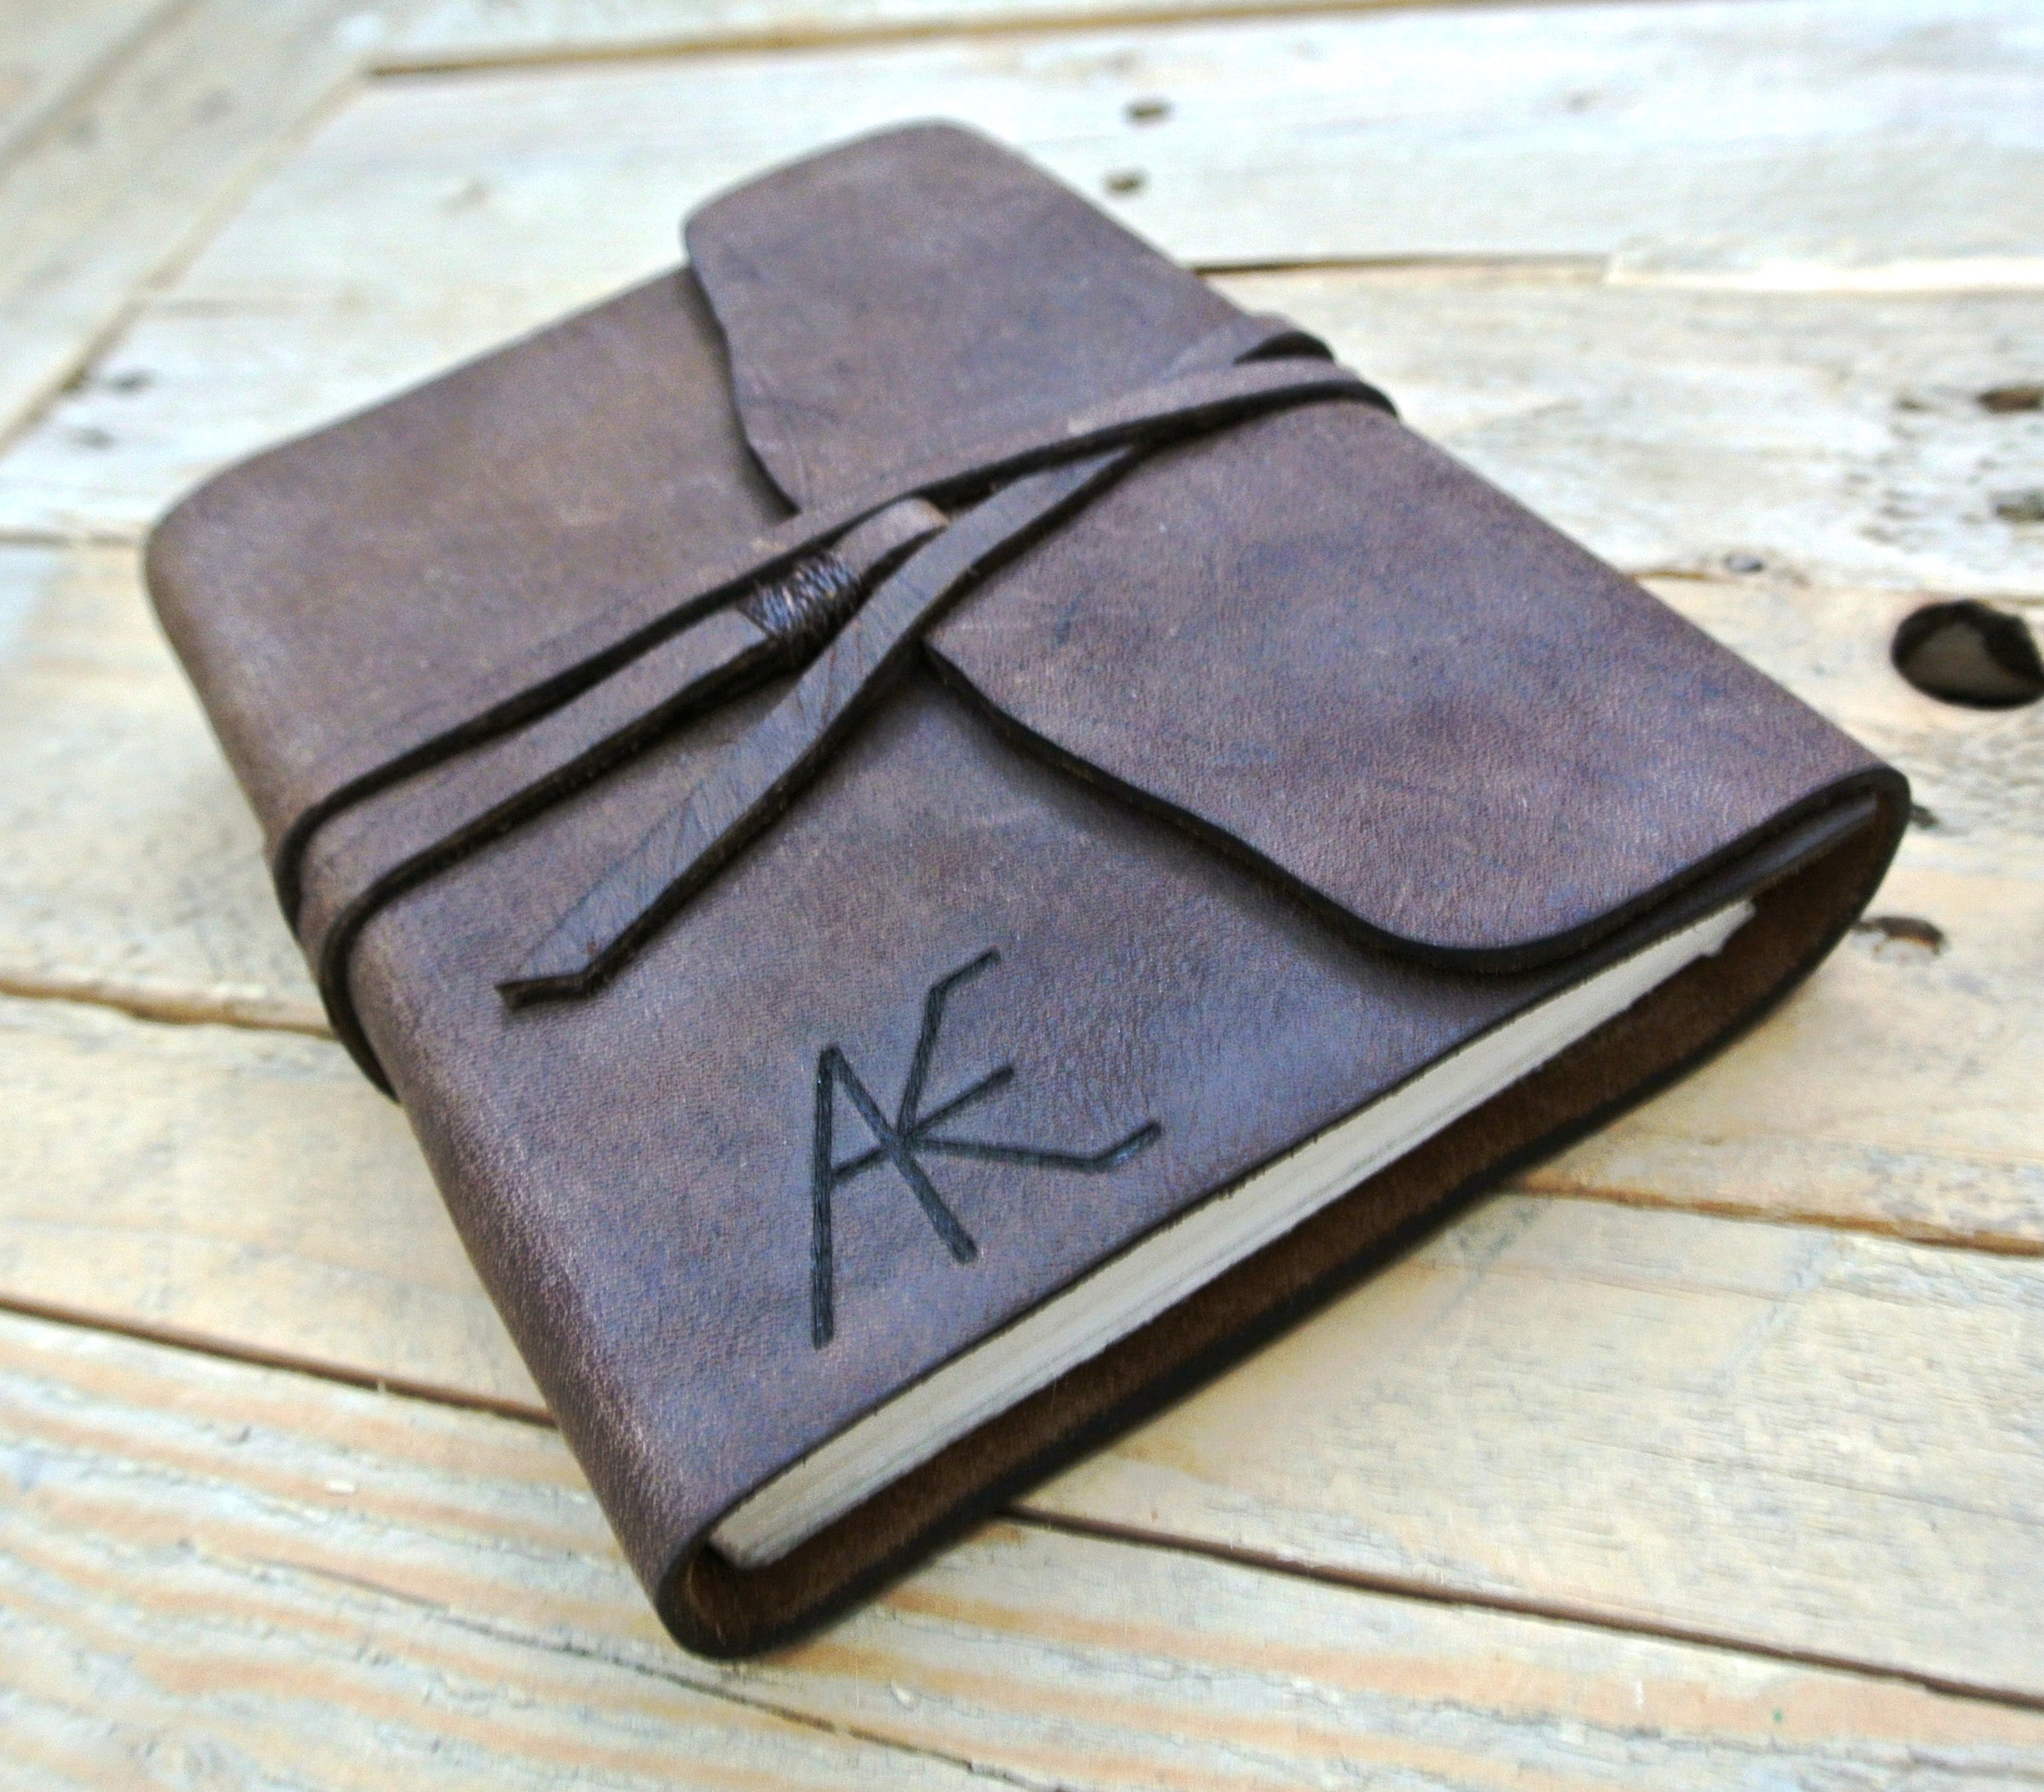 Circle M Brand leather journals engraved (21).JPG